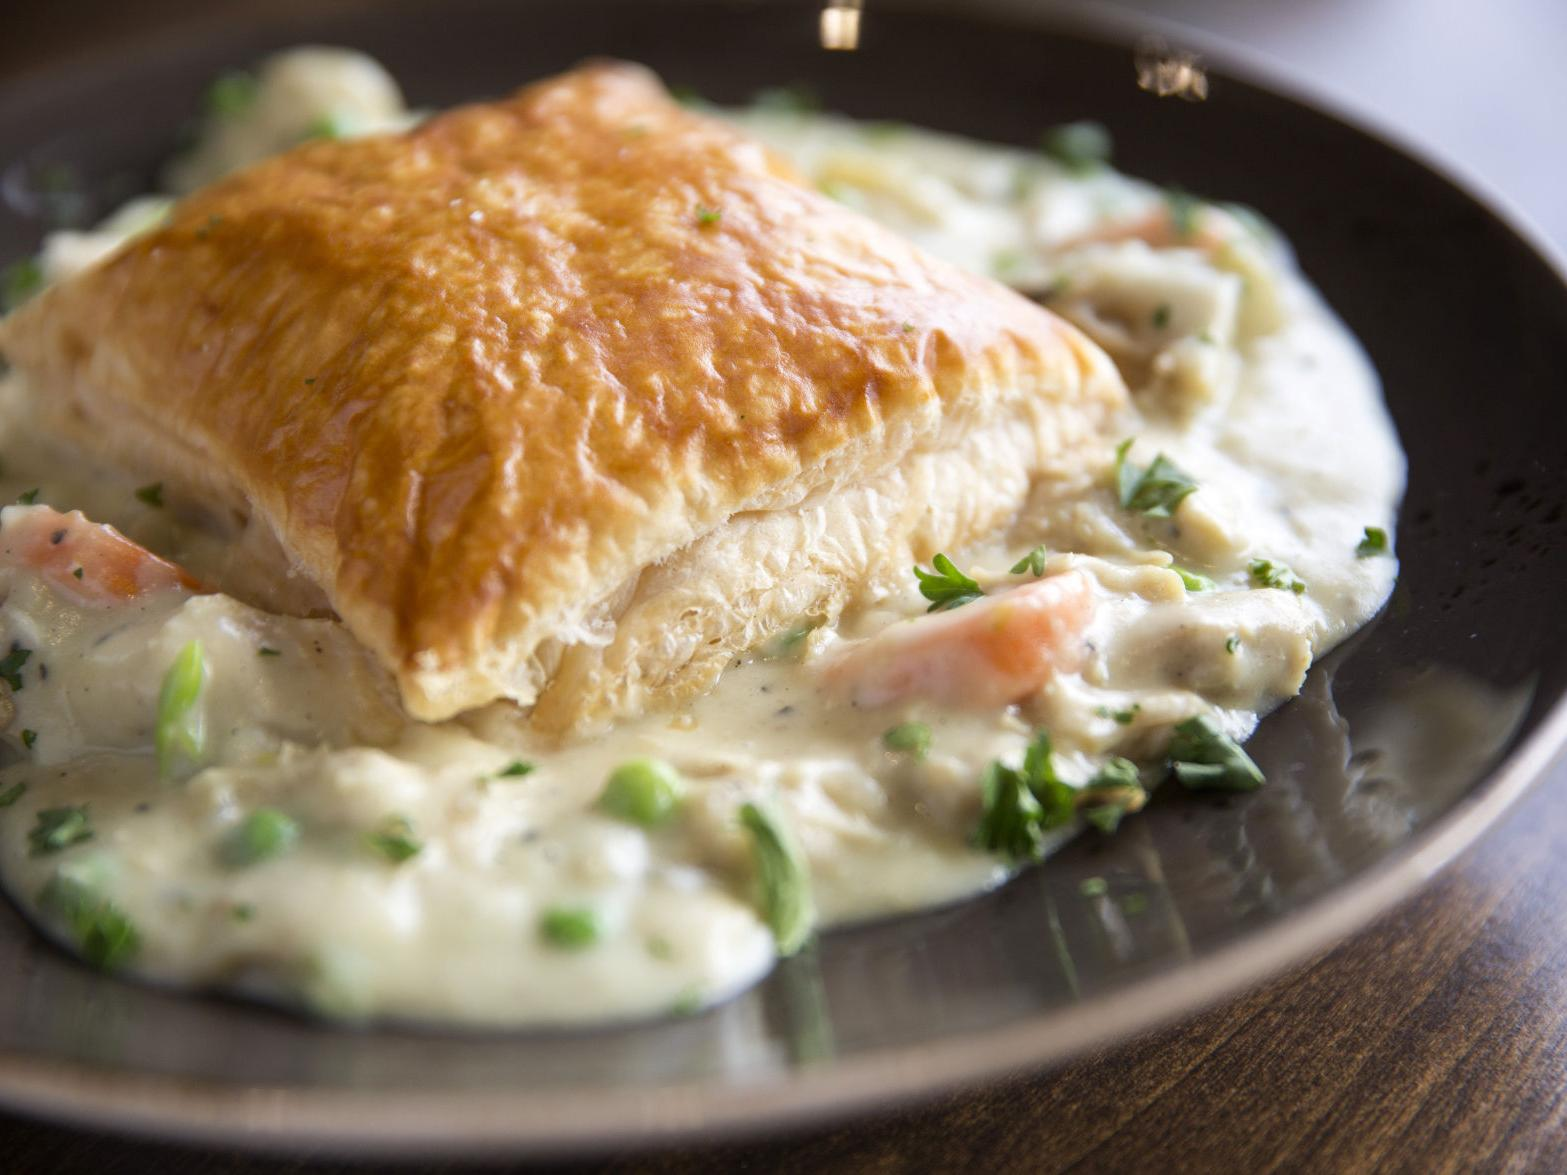 Dining review: Aksarben is now home to Beacon Hills, Lincoln's former comfort food mainstay